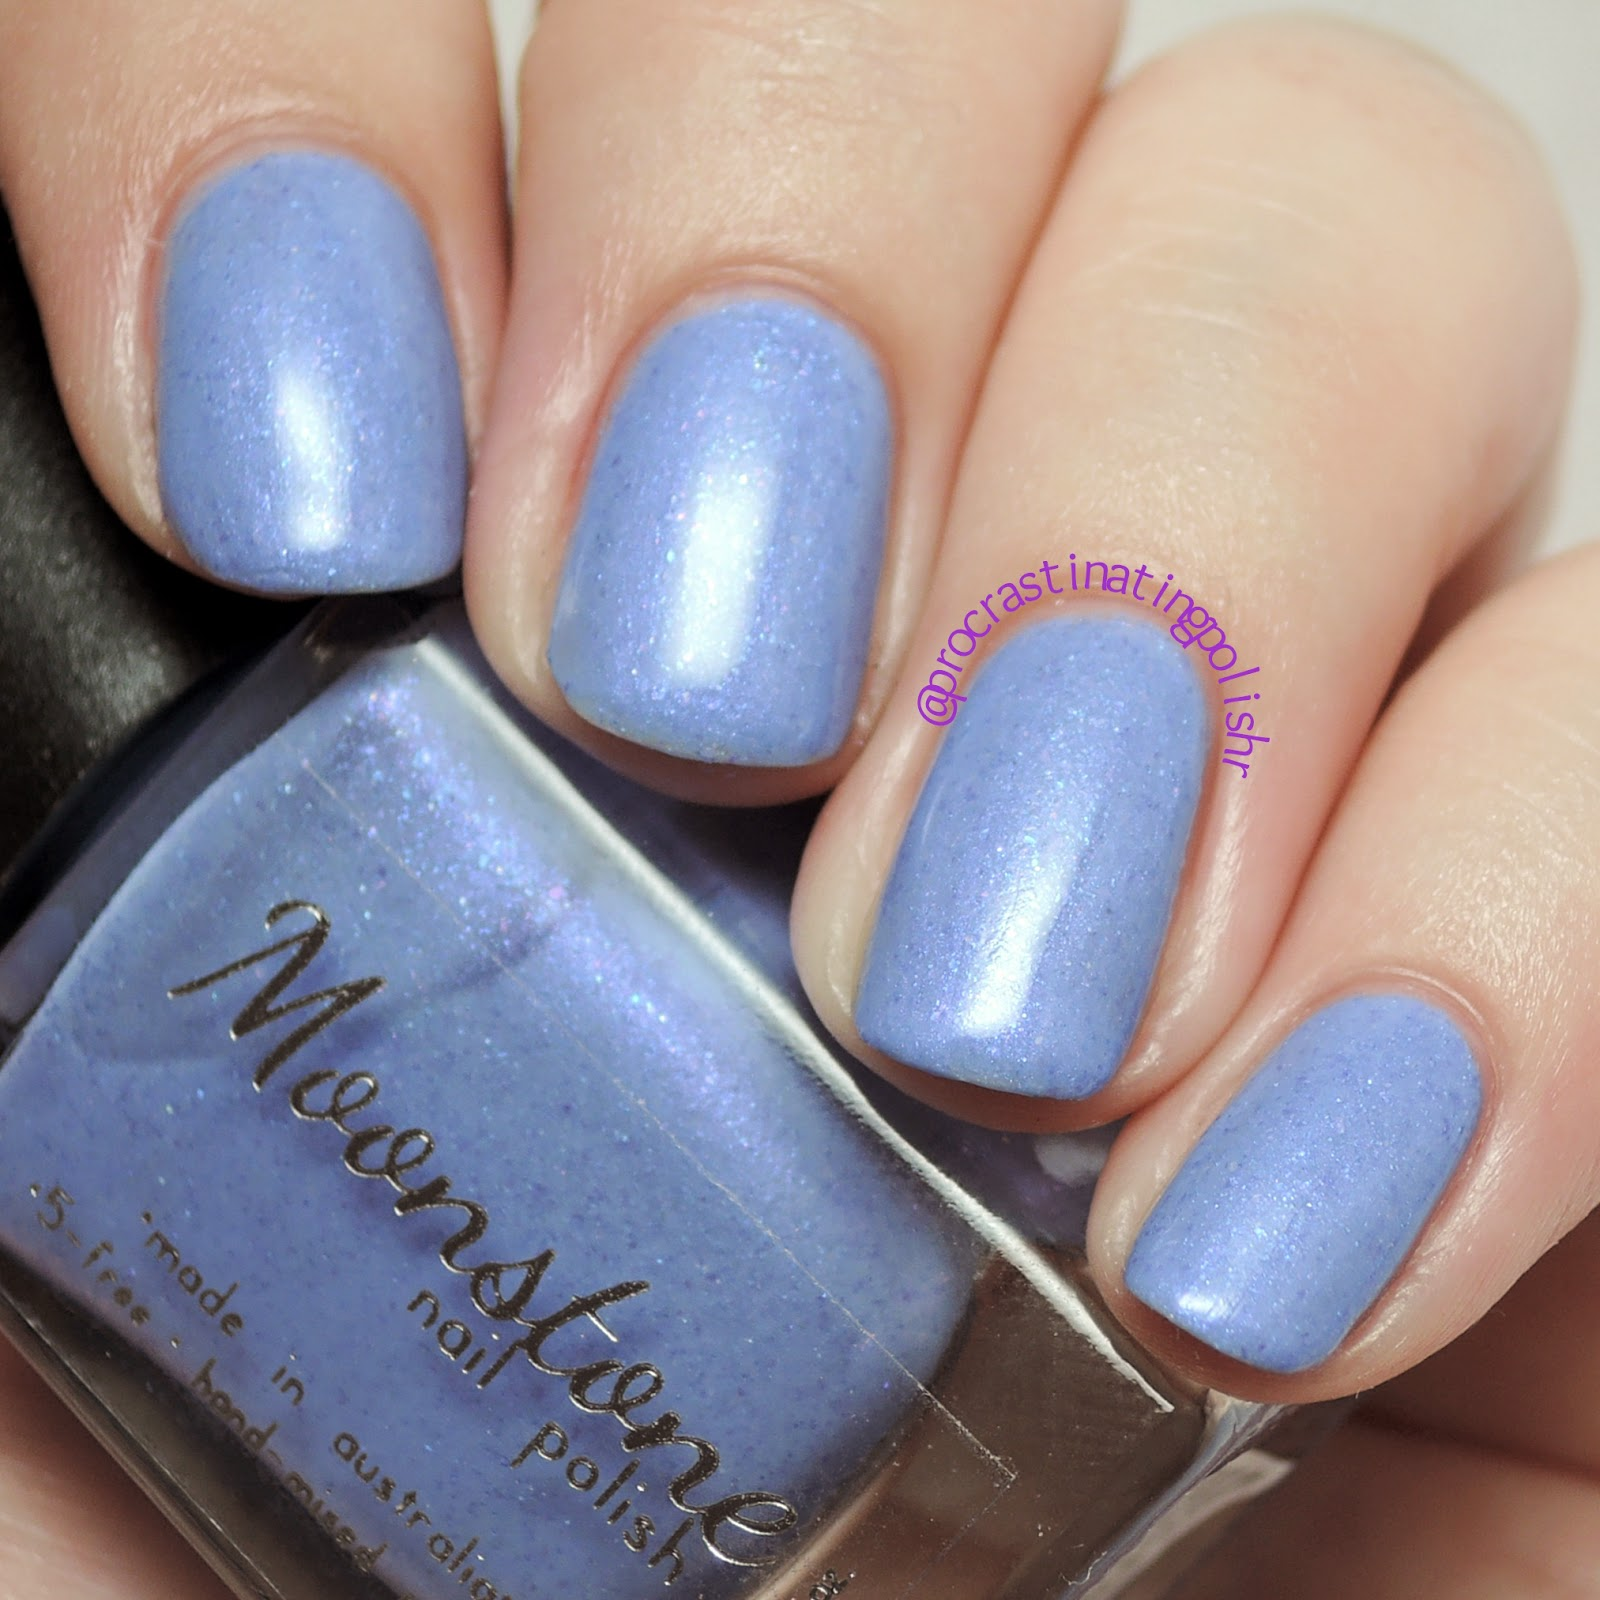 Moonstone Nail Polish - Luna | Wicked Witches collection